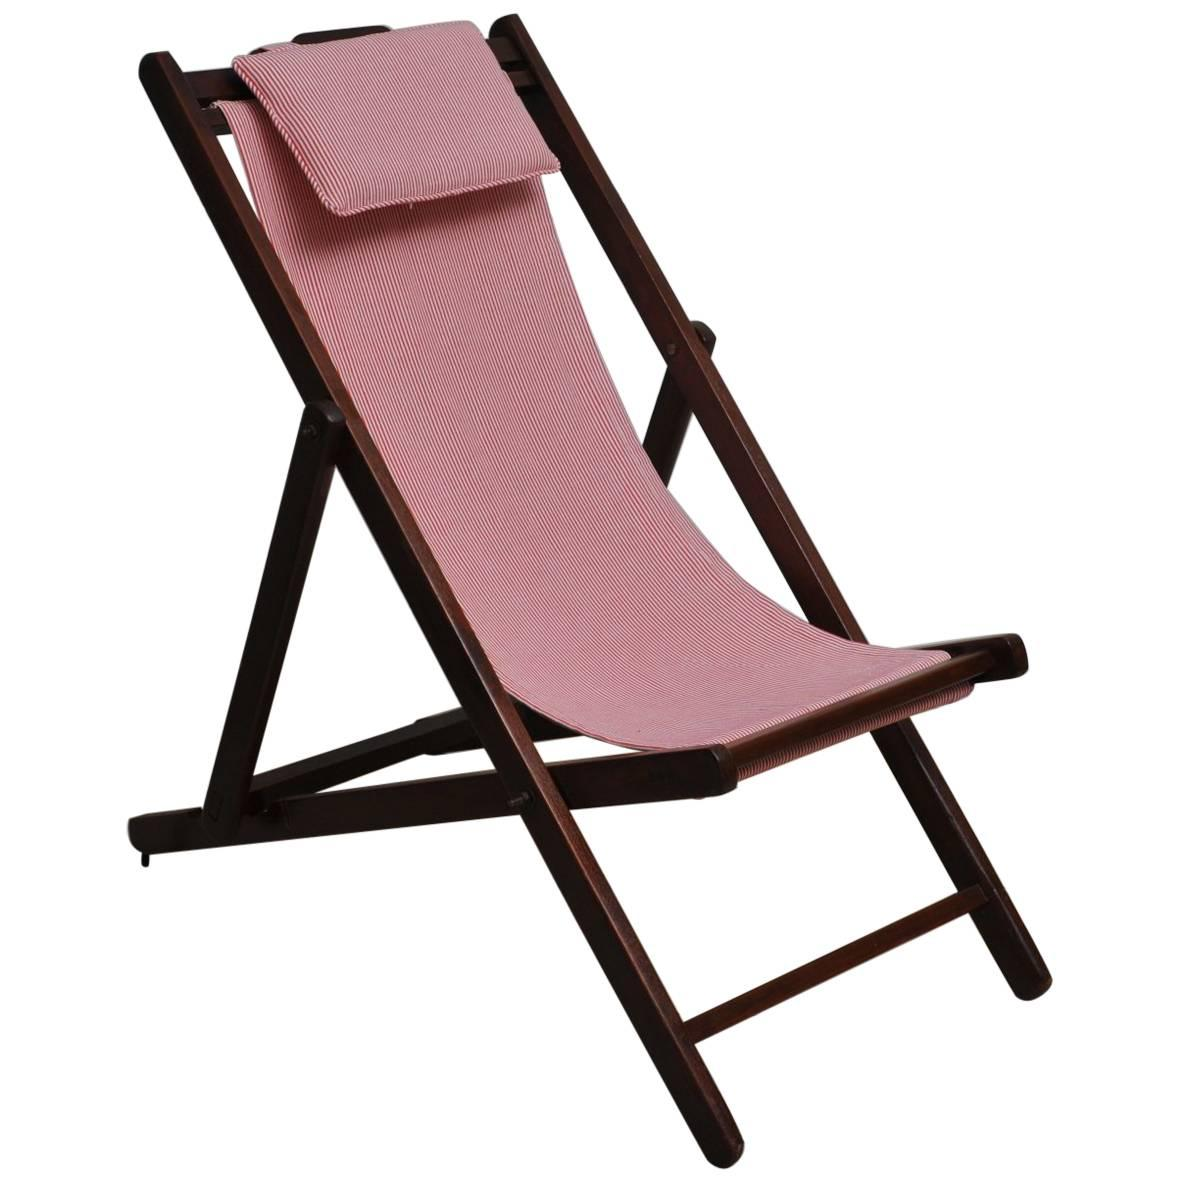 Folding And Adjustable Sling Back Lounge Chair, 1940s British Campaign